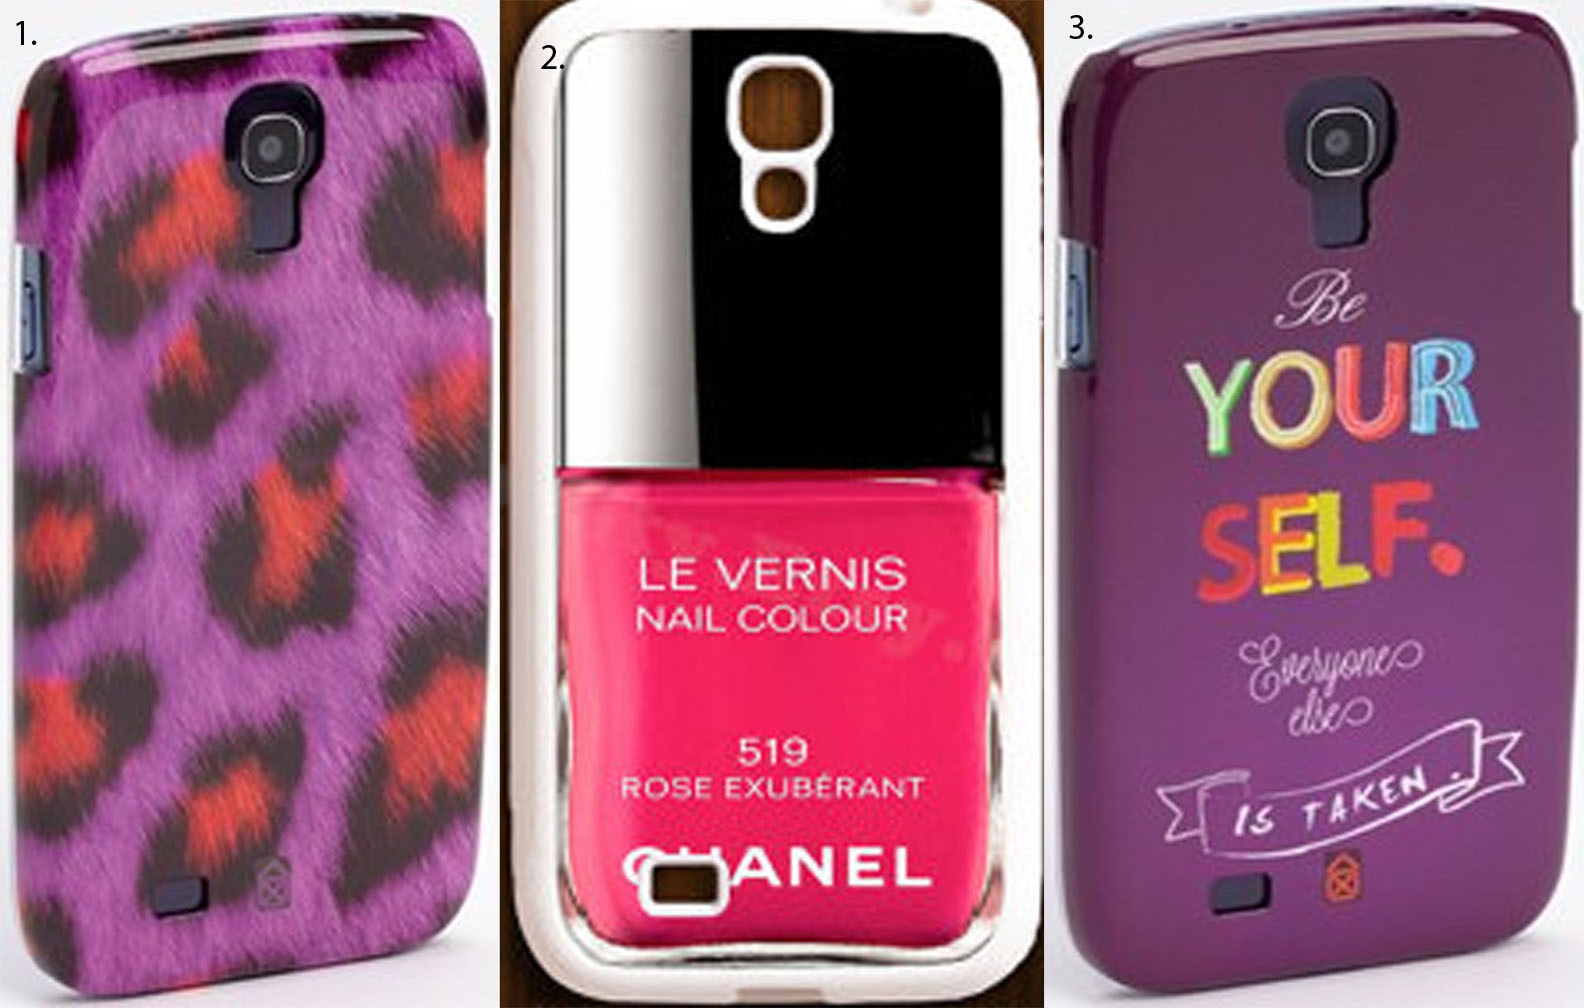 12 awesome samsung galaxy s4 cases - FASHION POSSE